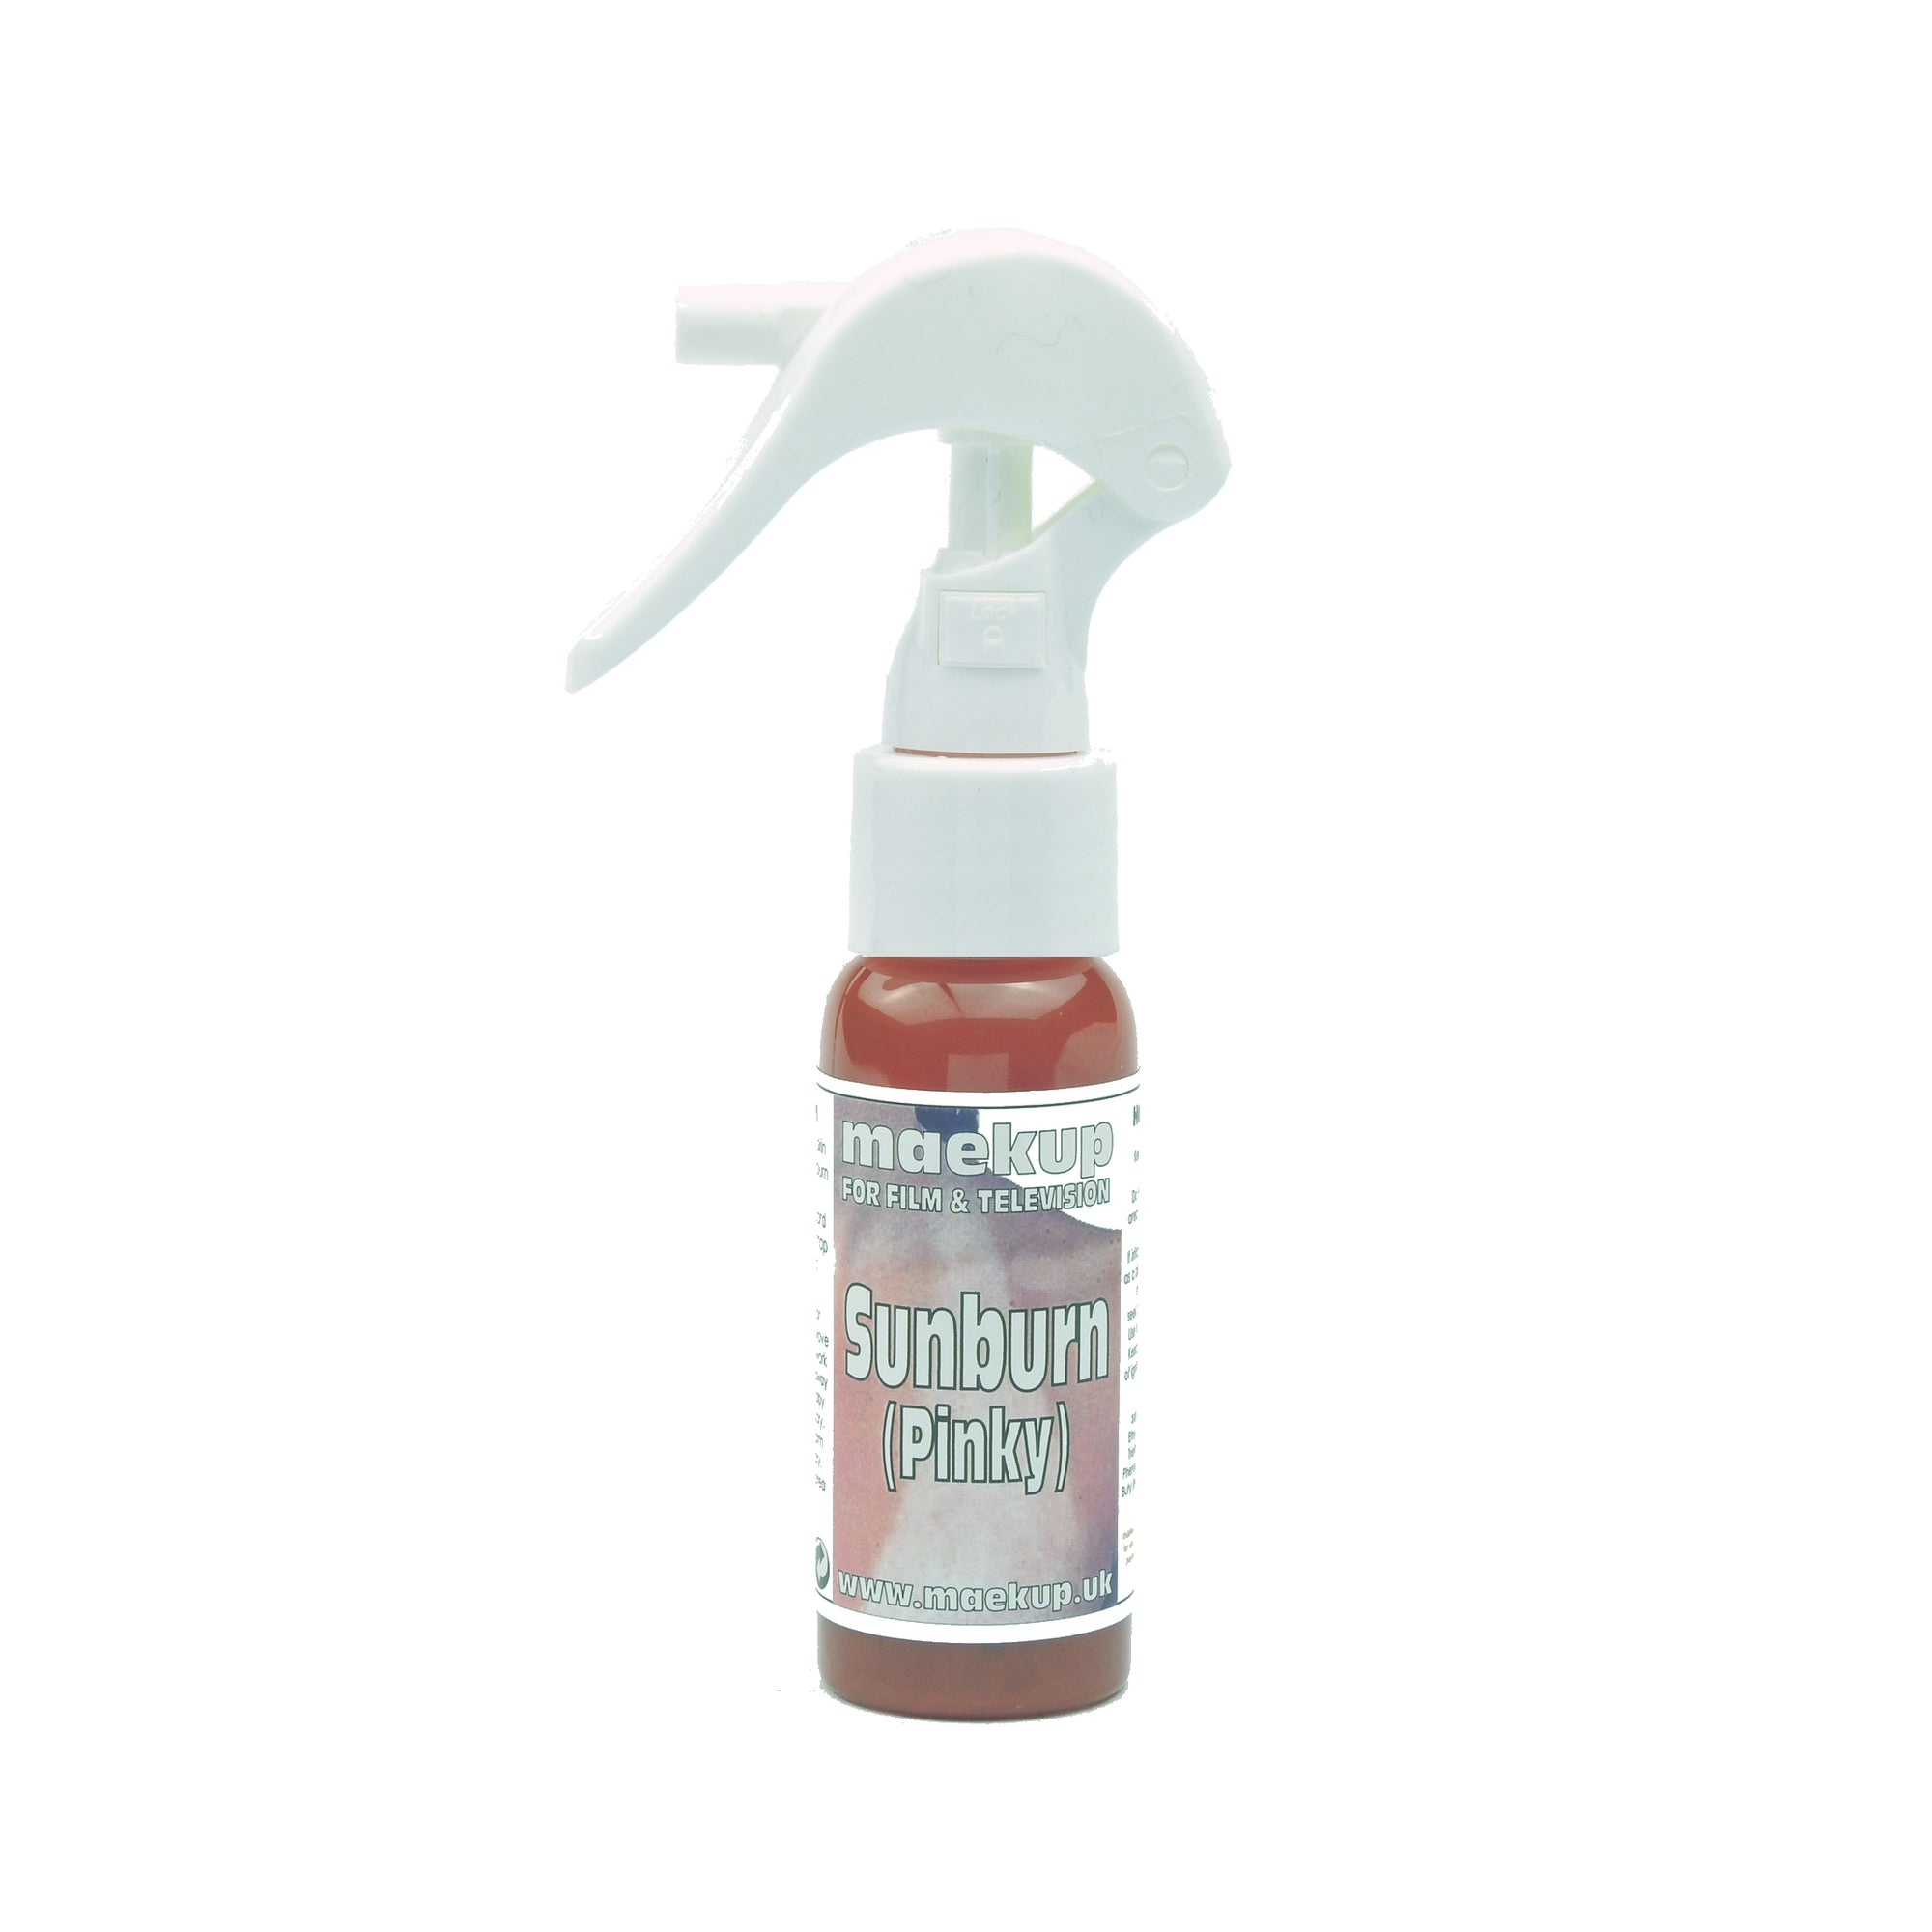 Maekup Sunburn Simulation Spray - Pinky